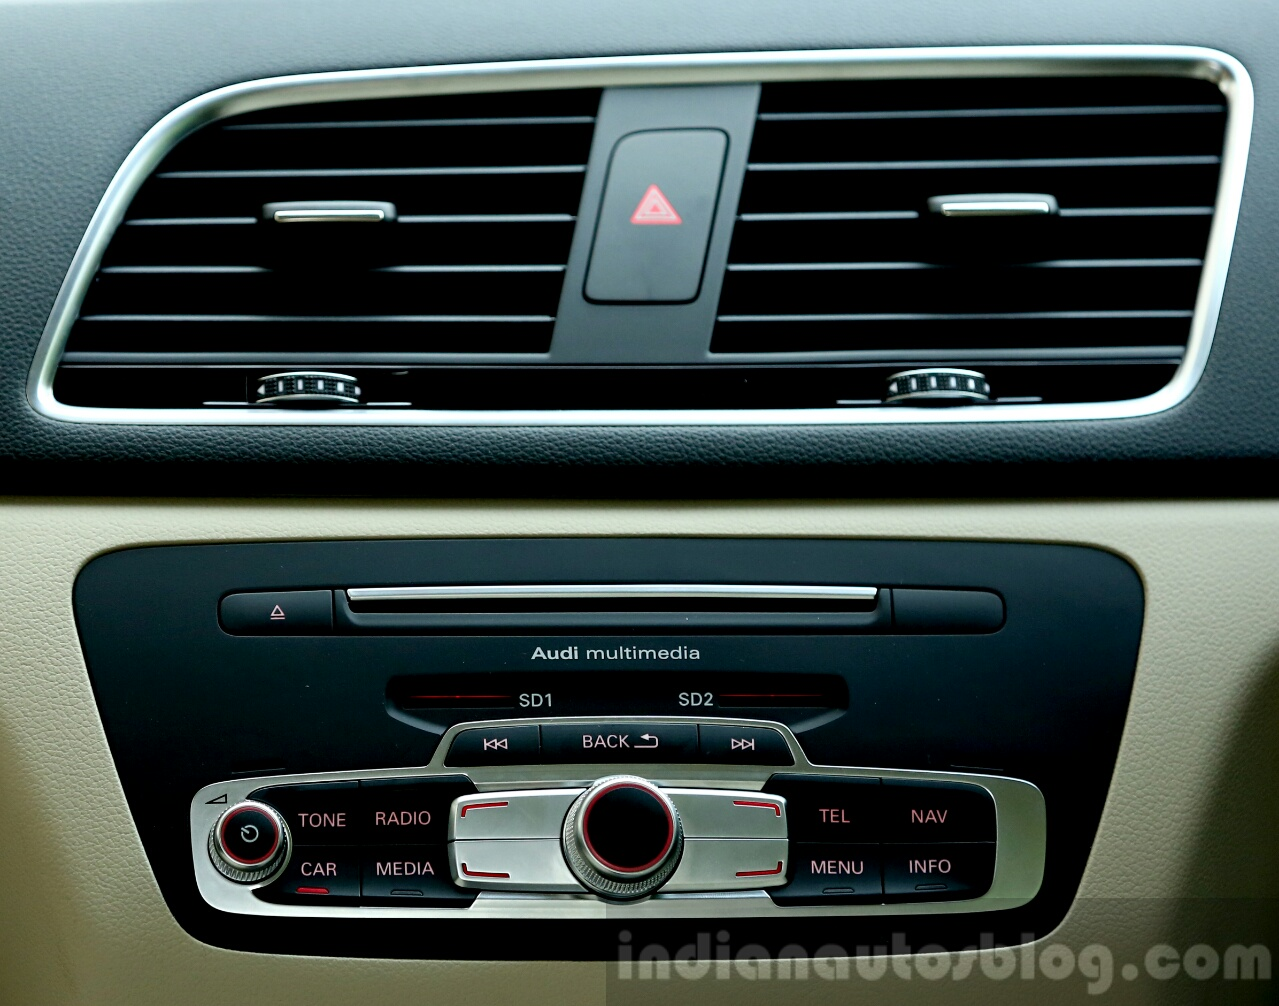 2015 Audi Q3 facelift music system India Review